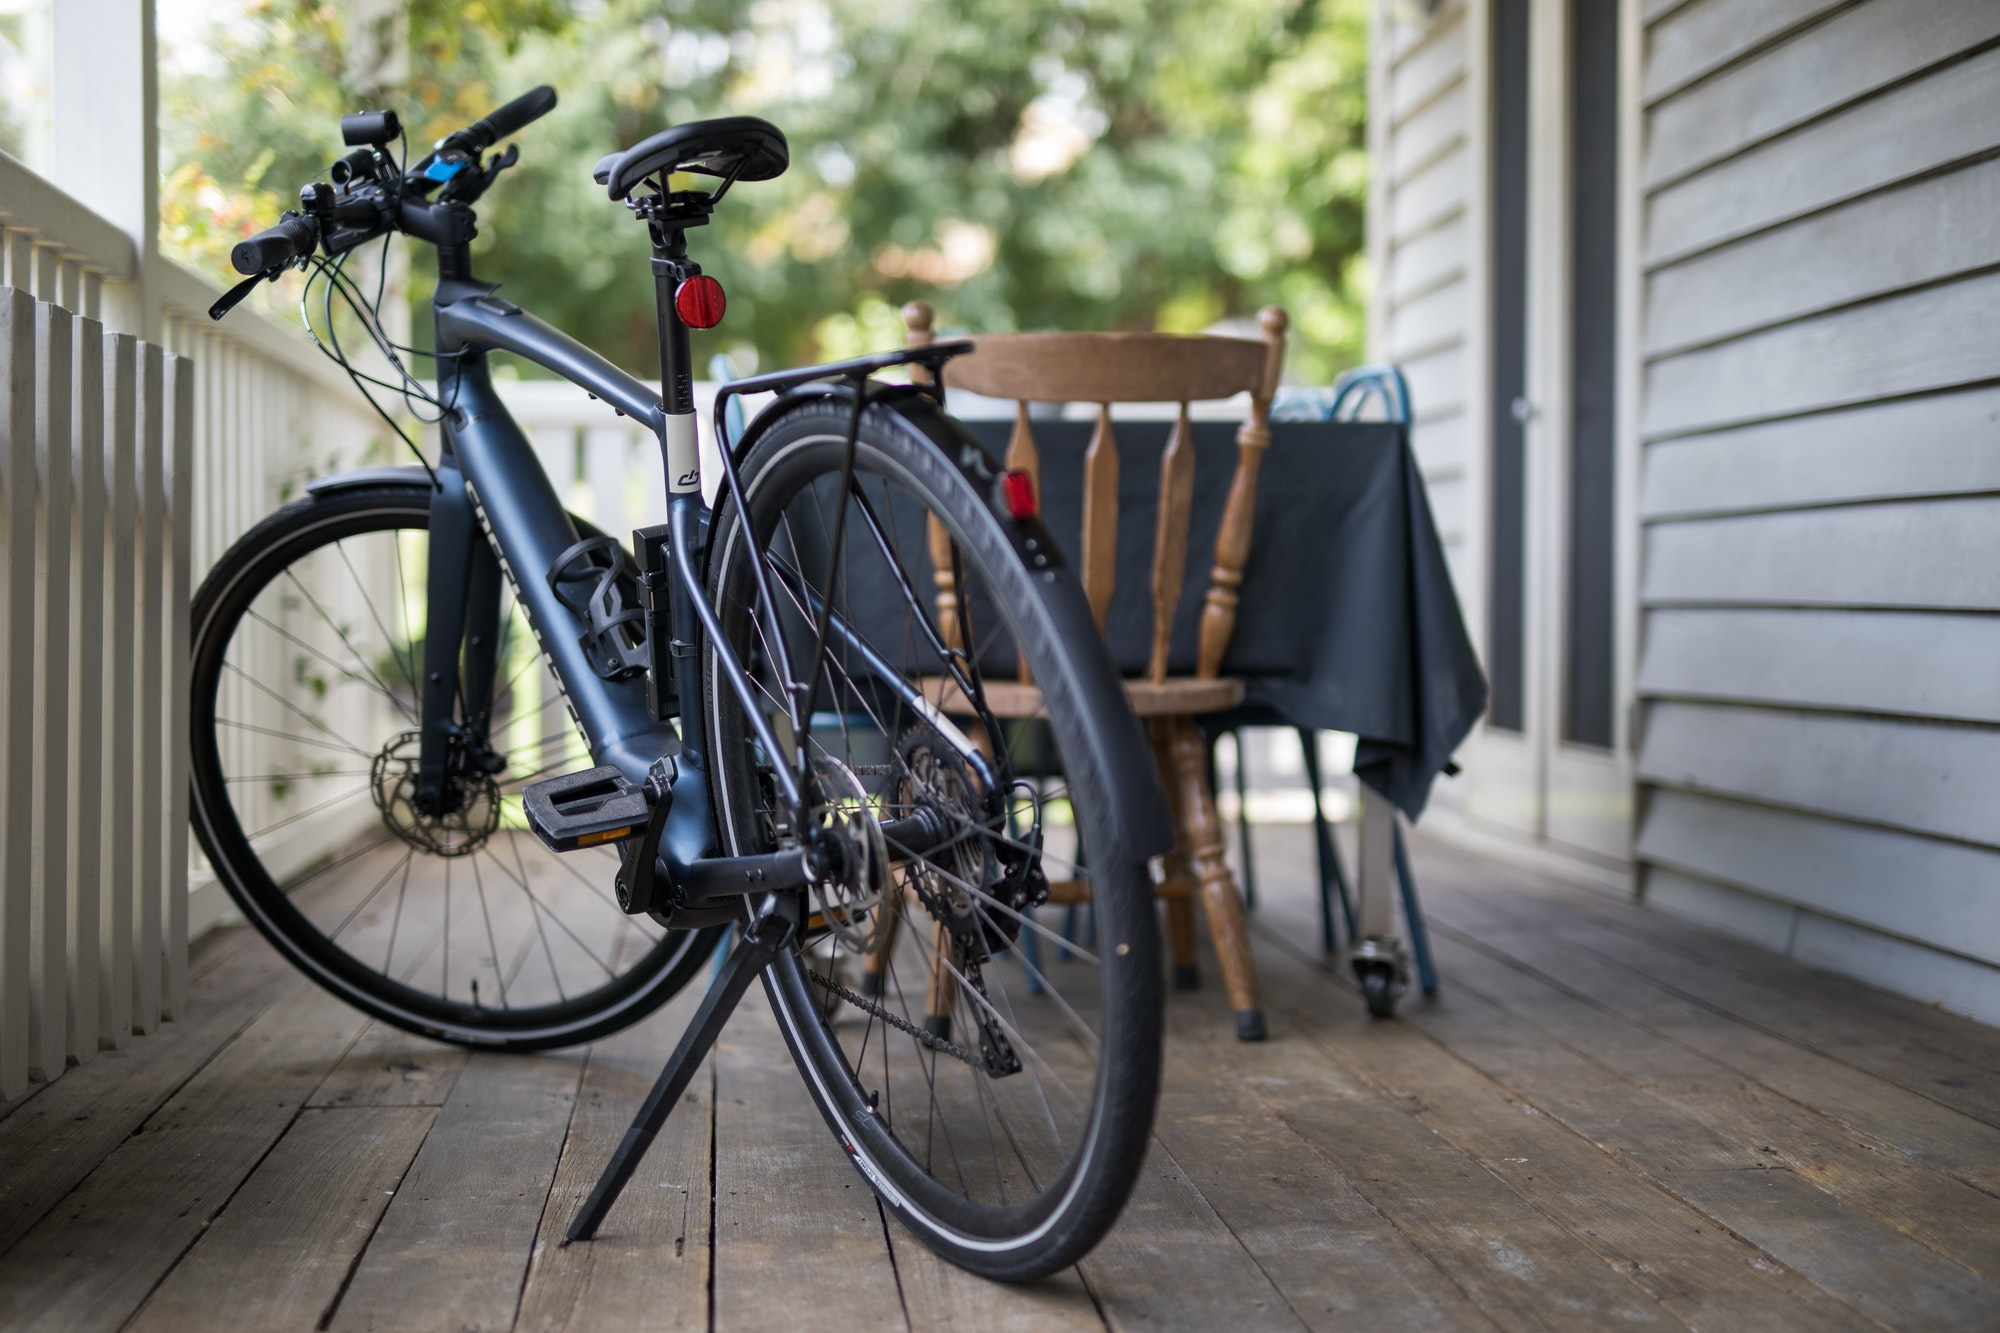 Ebike on porch of house